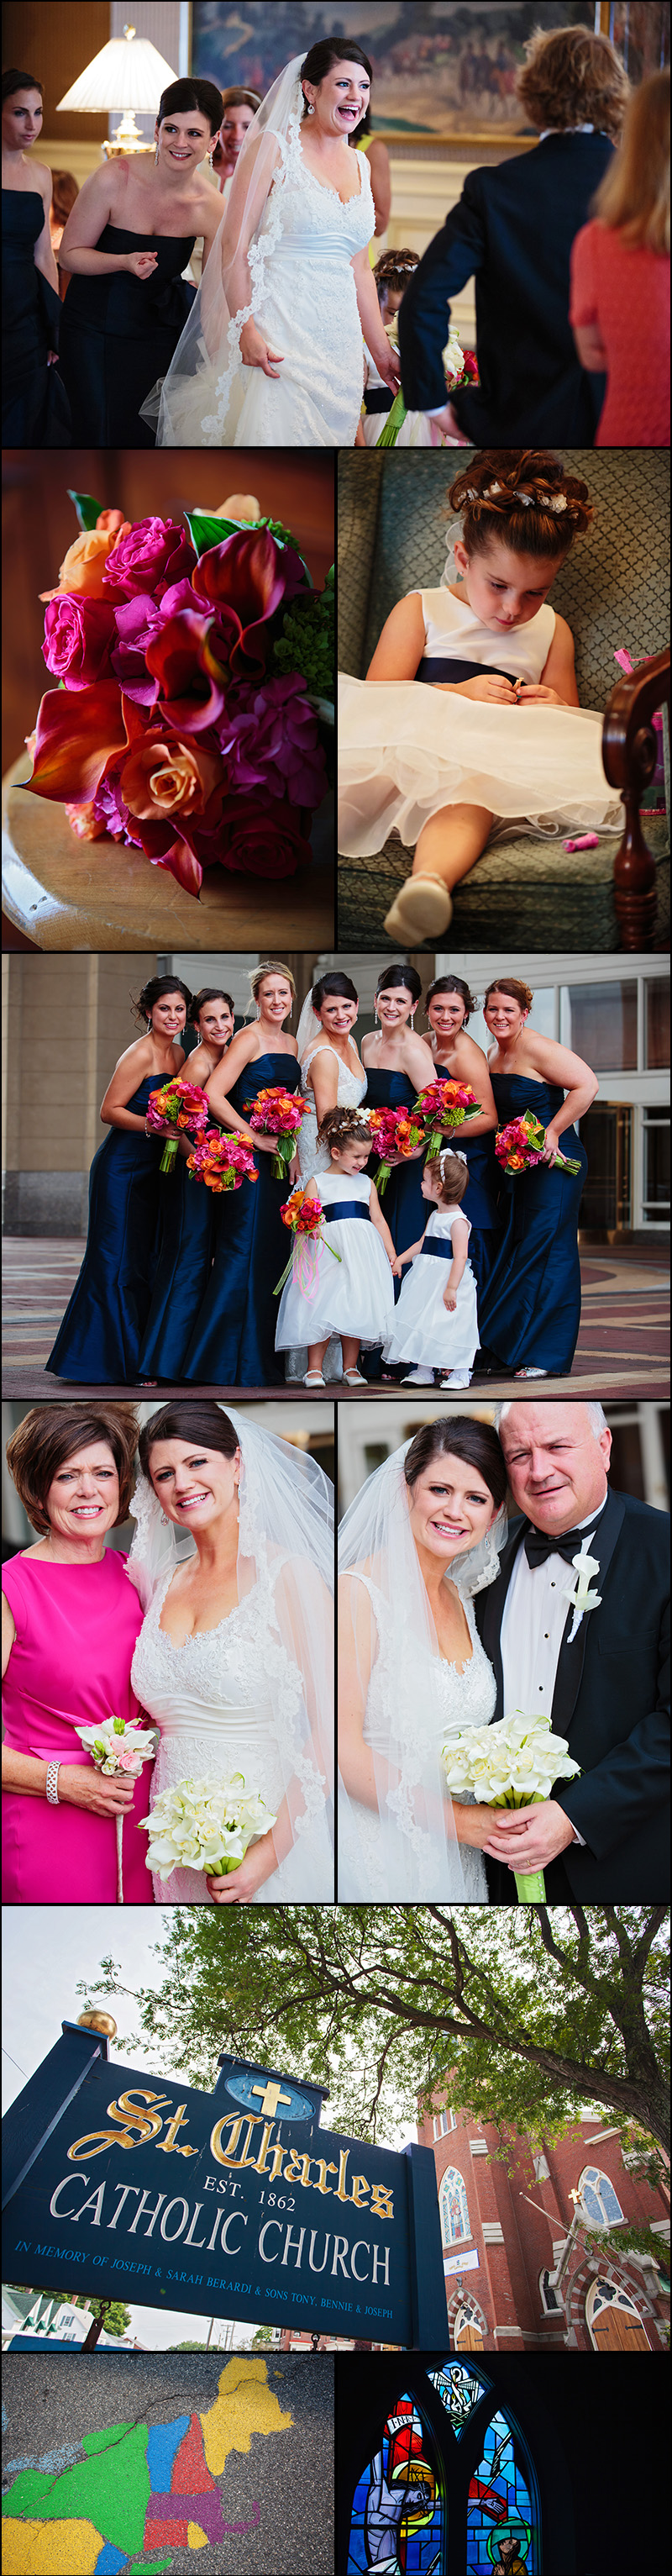 WEDDING PICTURES AT THE BOSTON HARBOR HOTEL